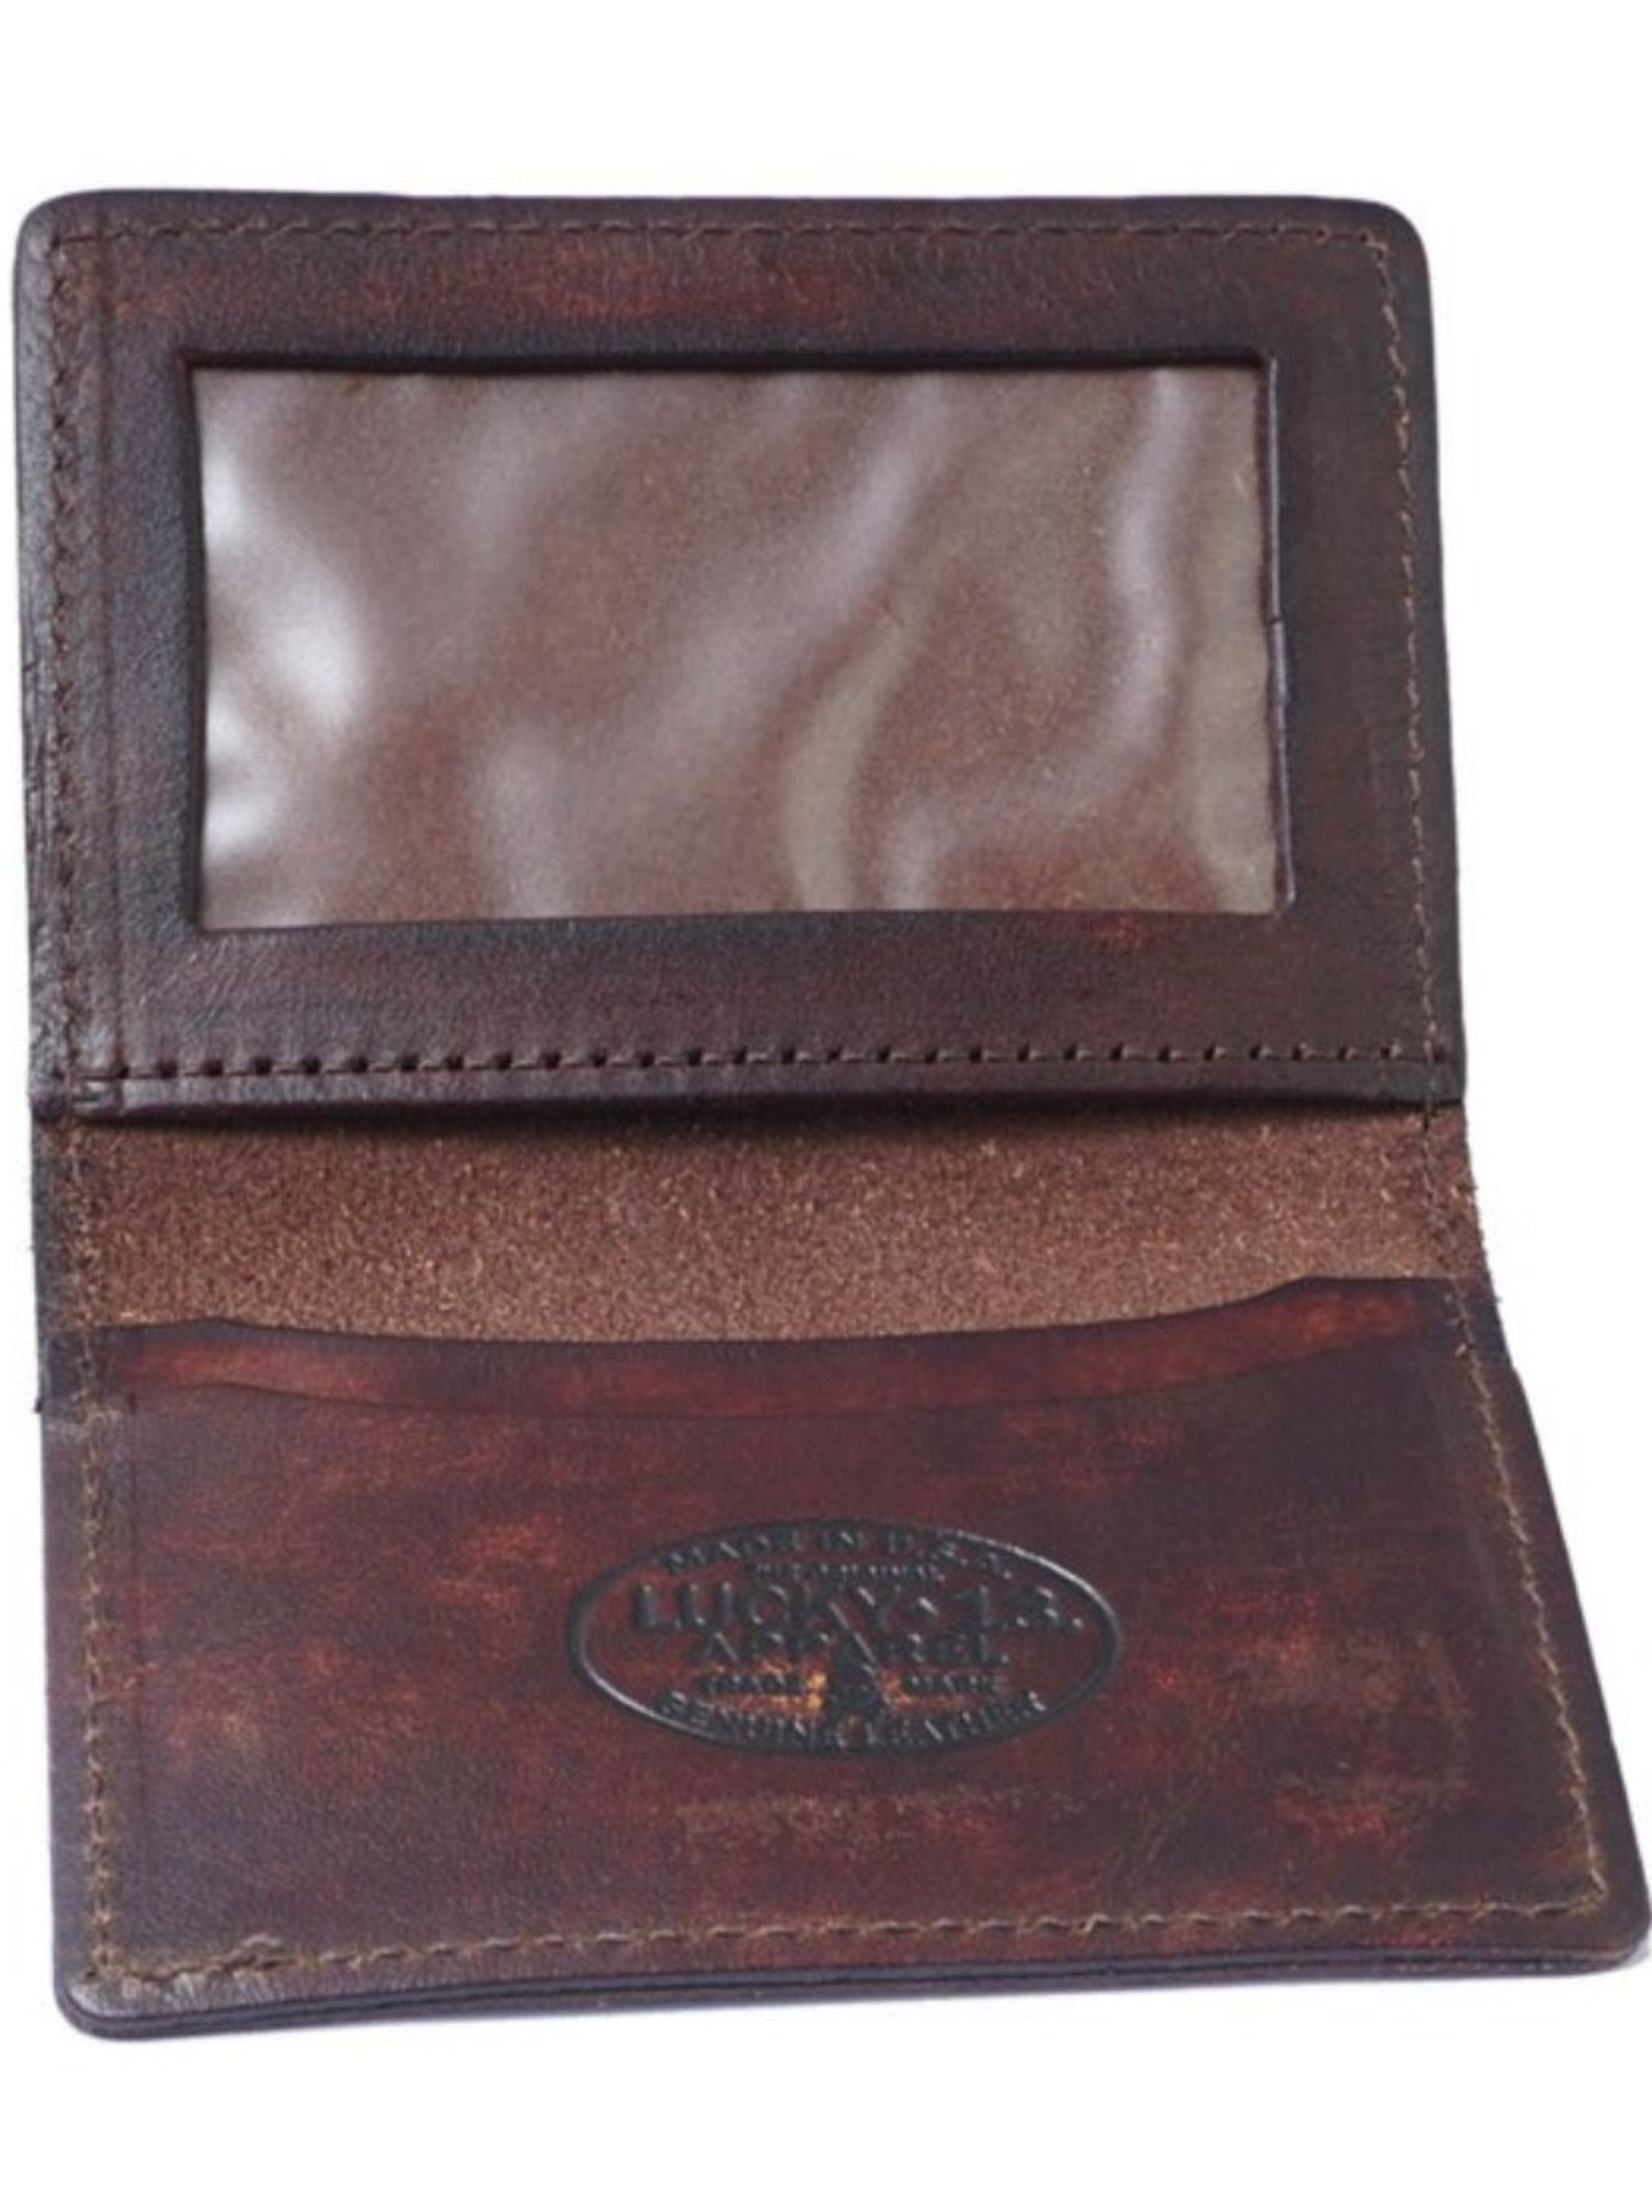 The DEATH OR GLORY Leather Card Holder Wallet - ANTIQUED BROWN